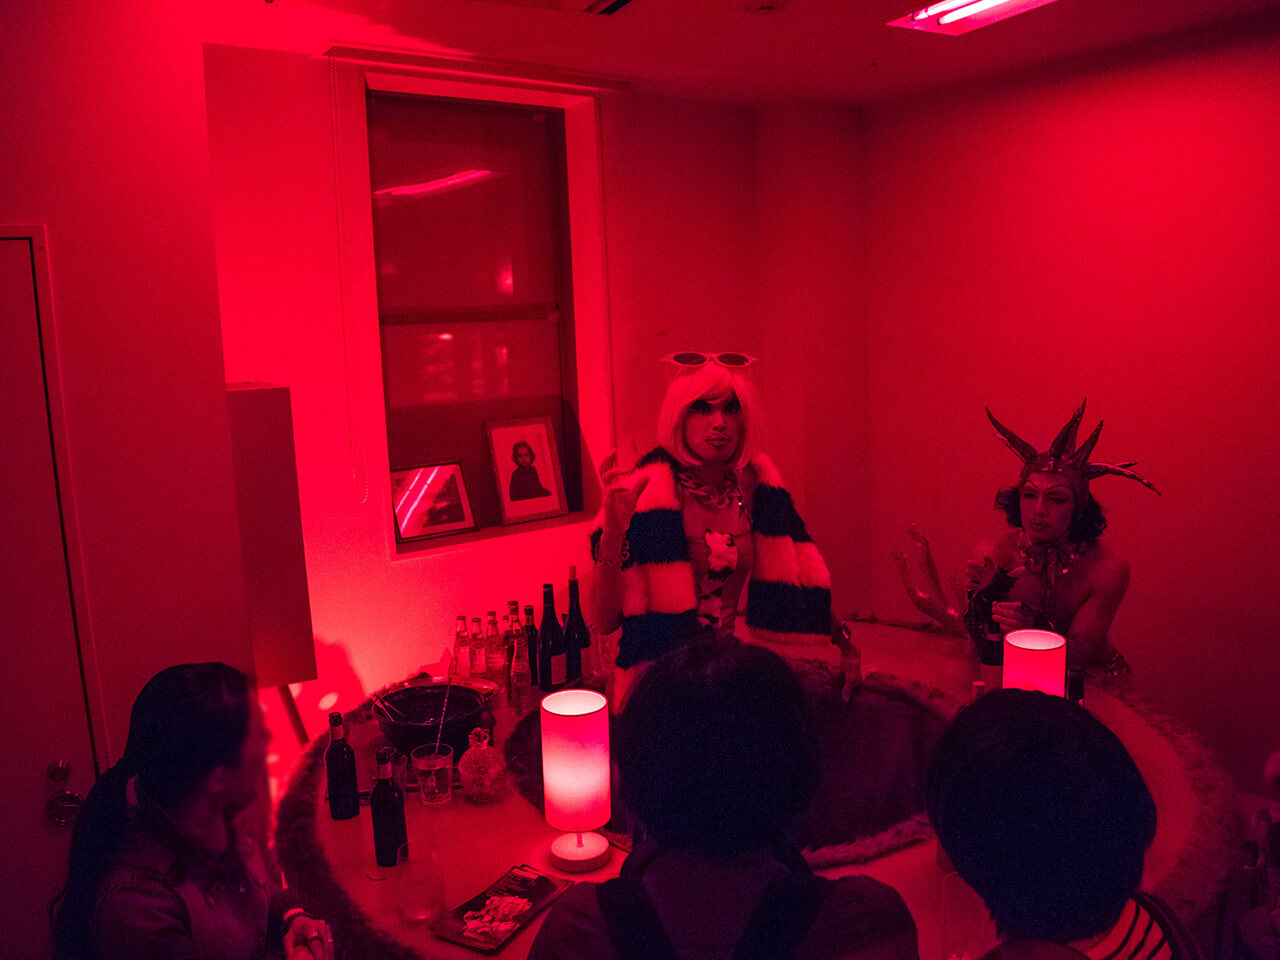 RED ROOM #5 PHOTOS 現代美術・アート Contemporary Art オフソサエティ offsociety